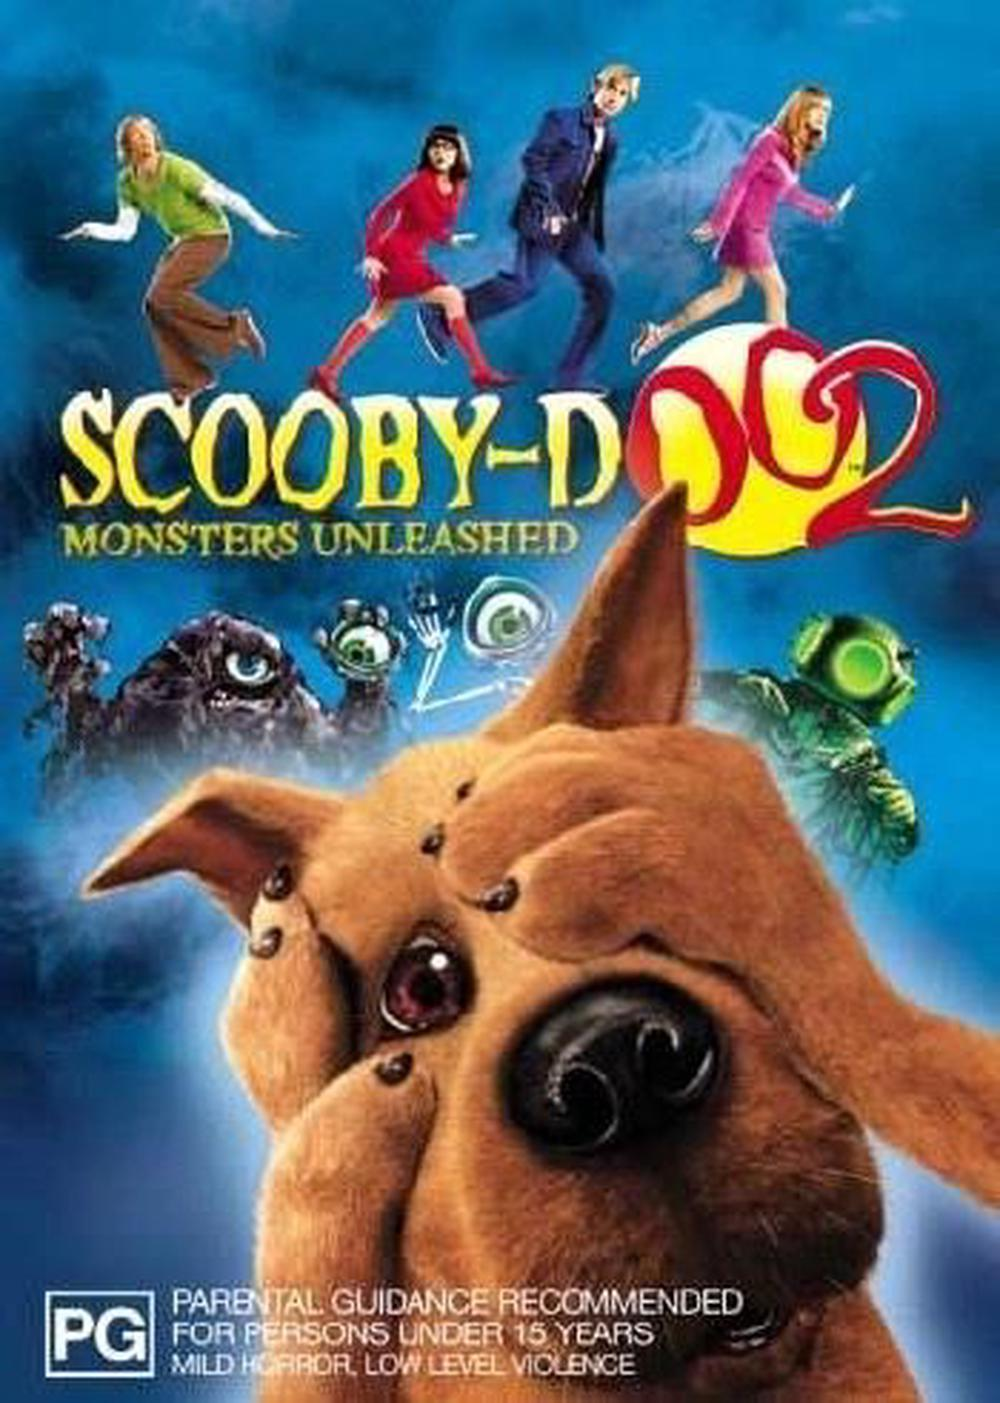 Scooby Doo 2 Monsters Unleashed Dvd Buy Online At The Nile